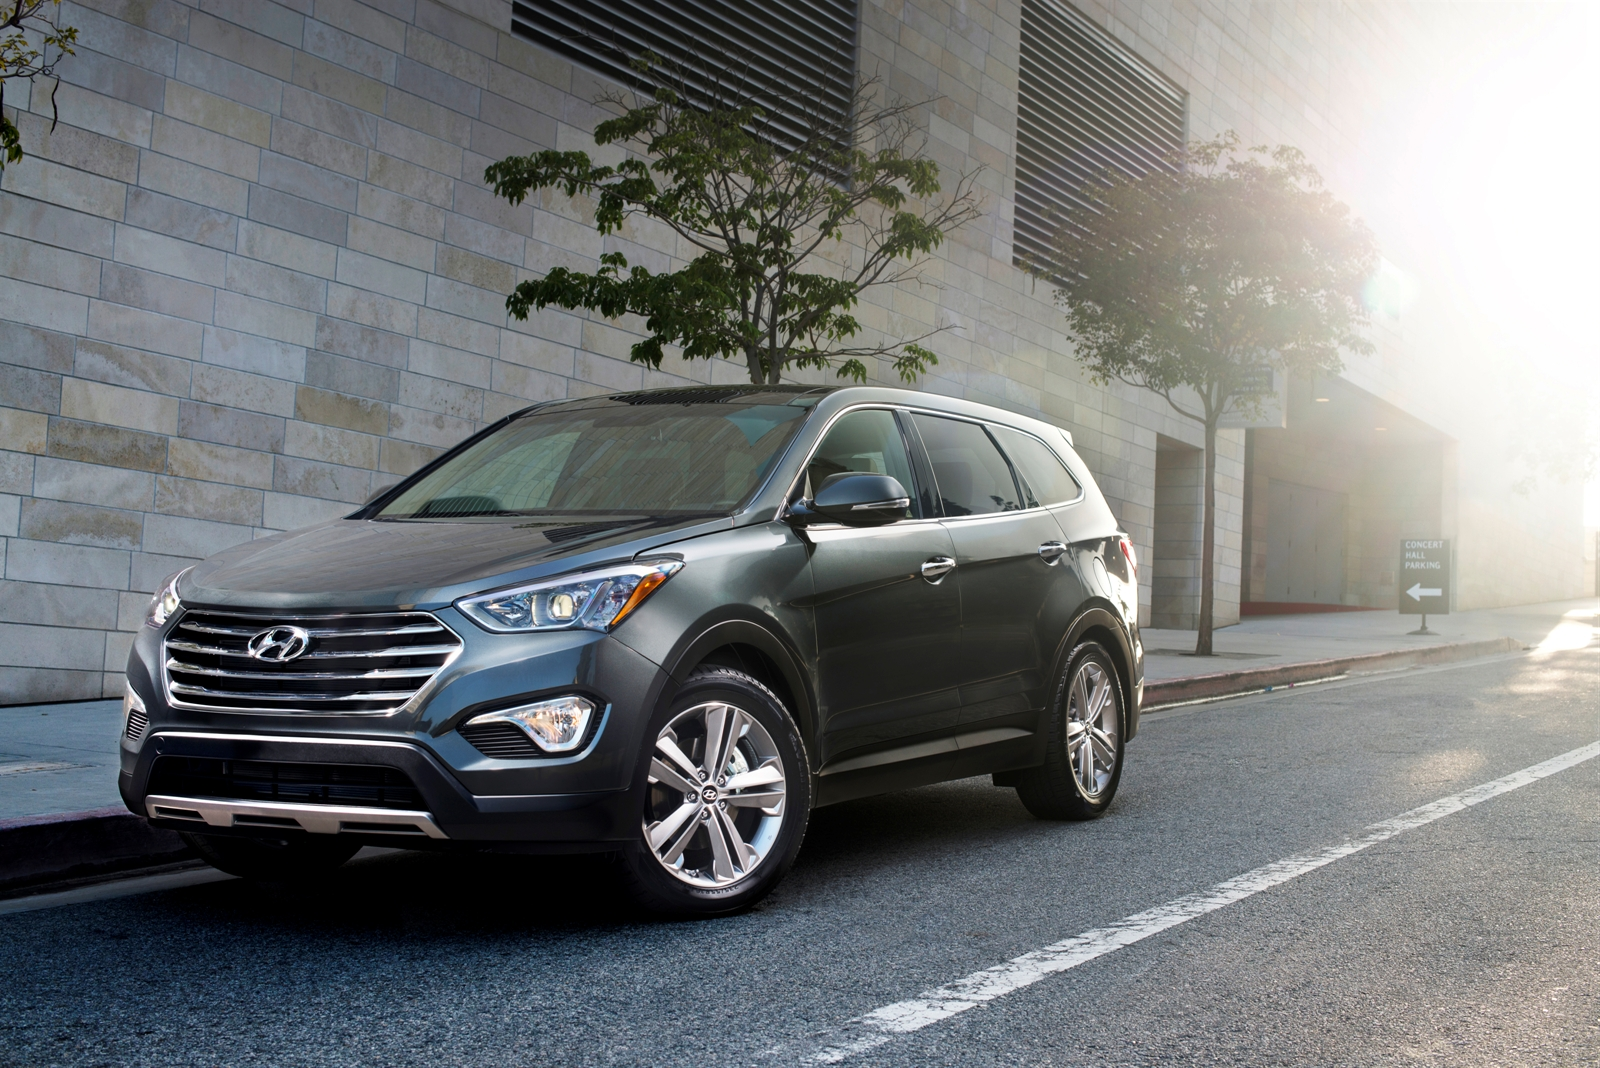 Hyundai To Enhance In Vehicle Search And Navigation